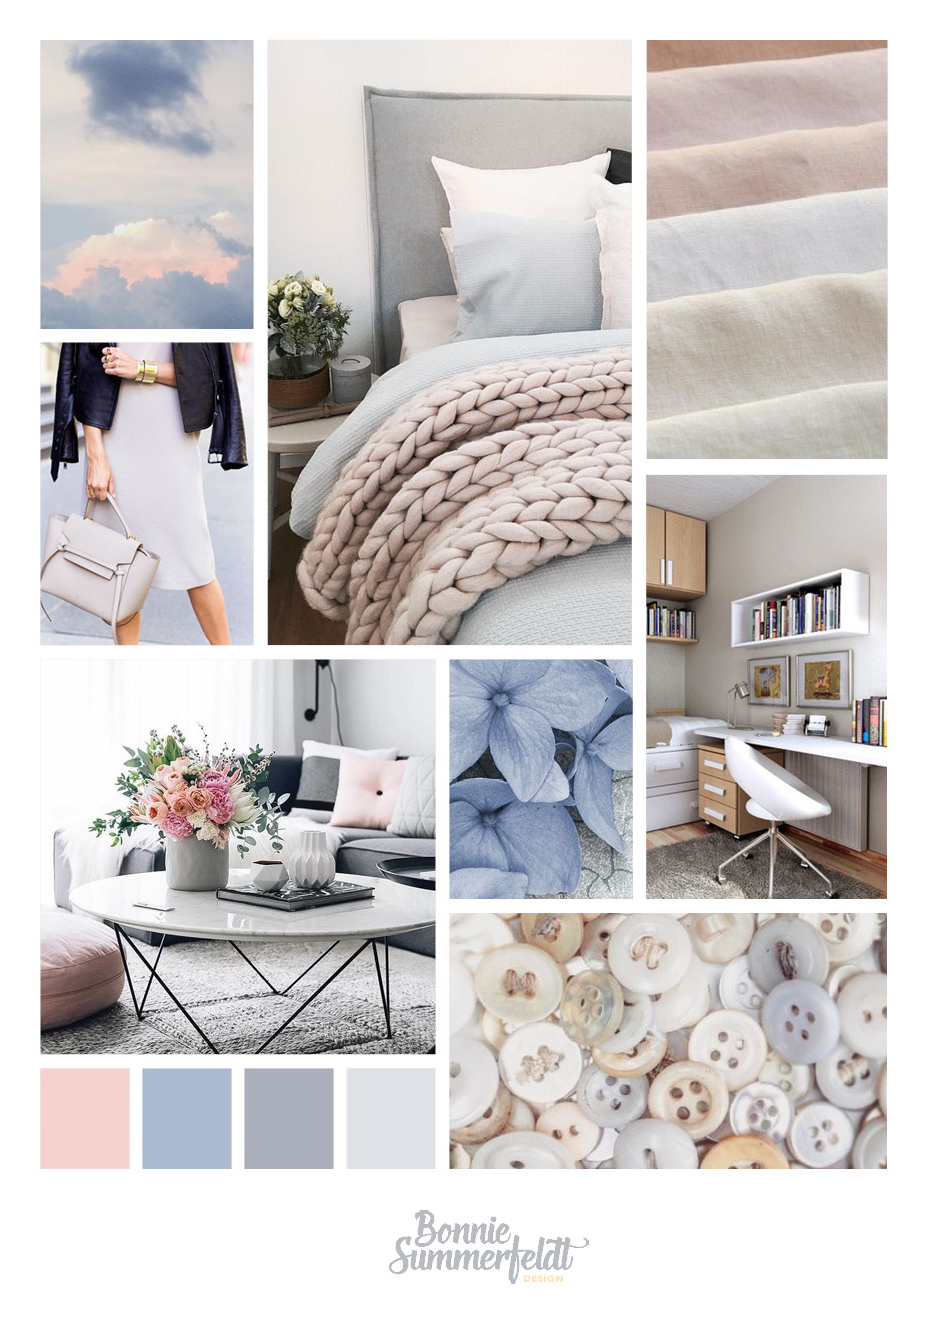 This moodboard shows the look and feel of the branding for Kathys new interior design business.